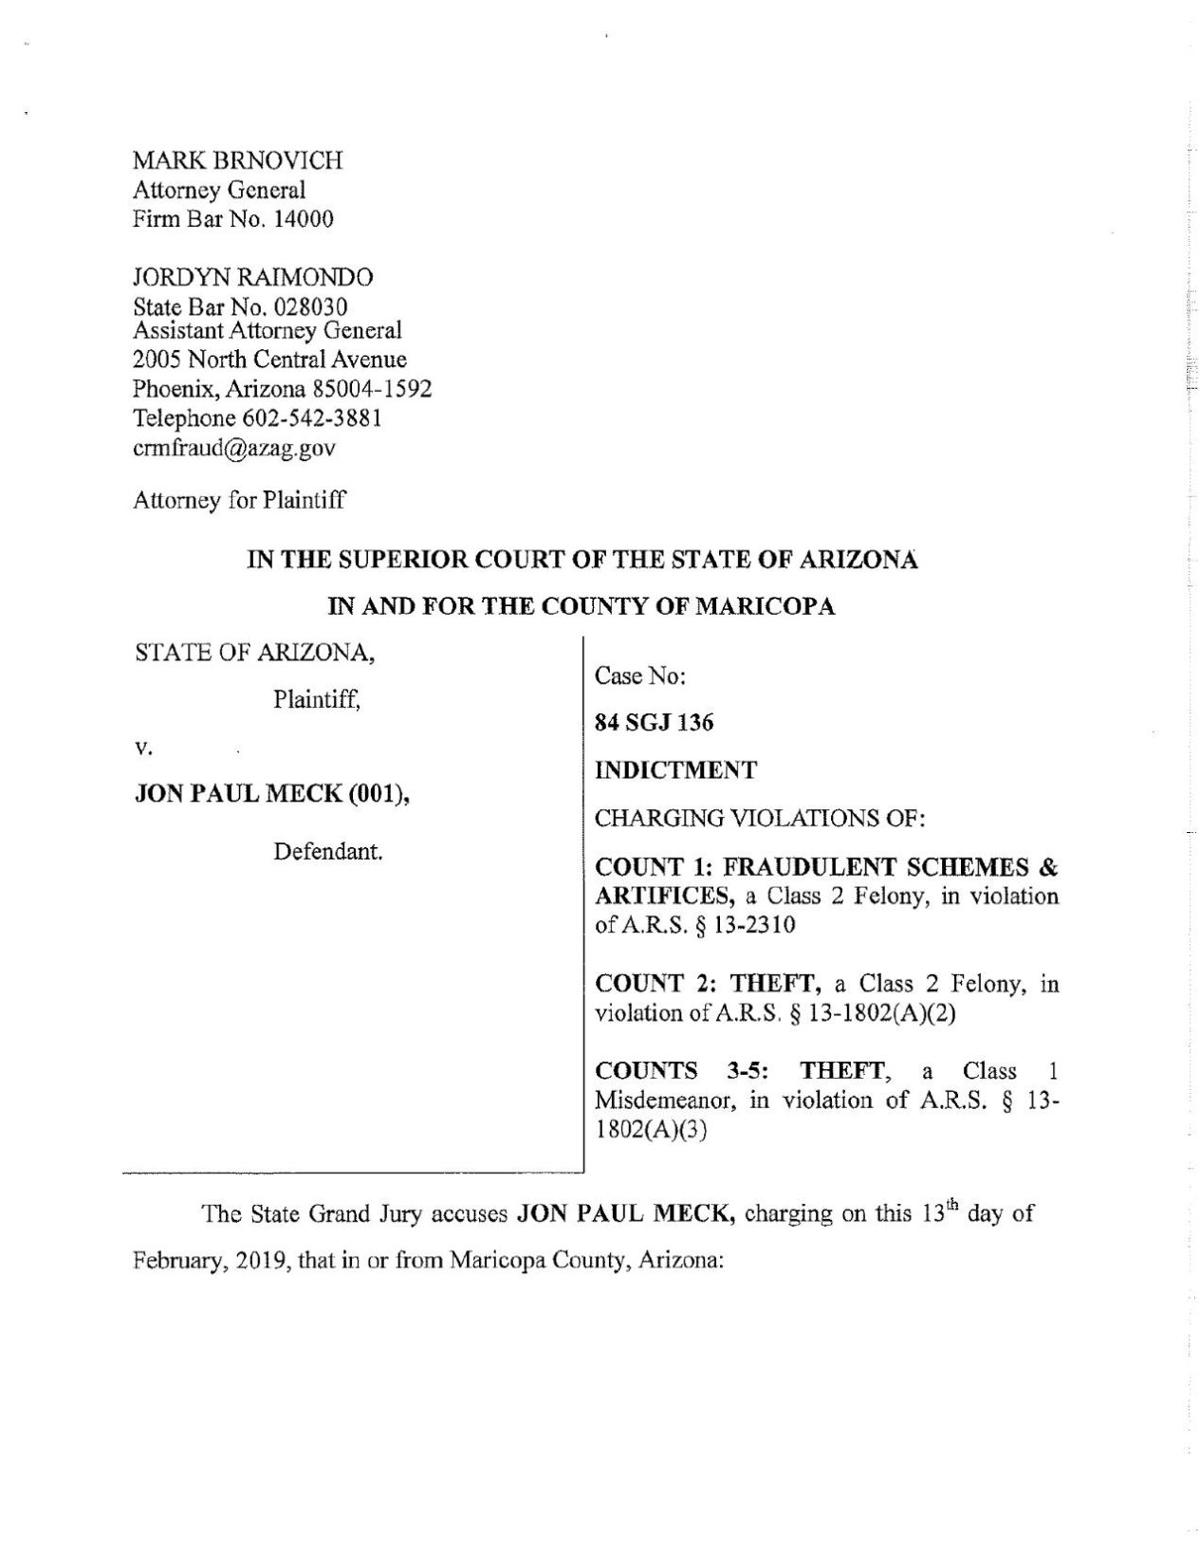 PDF: Indictment of Jon Meck